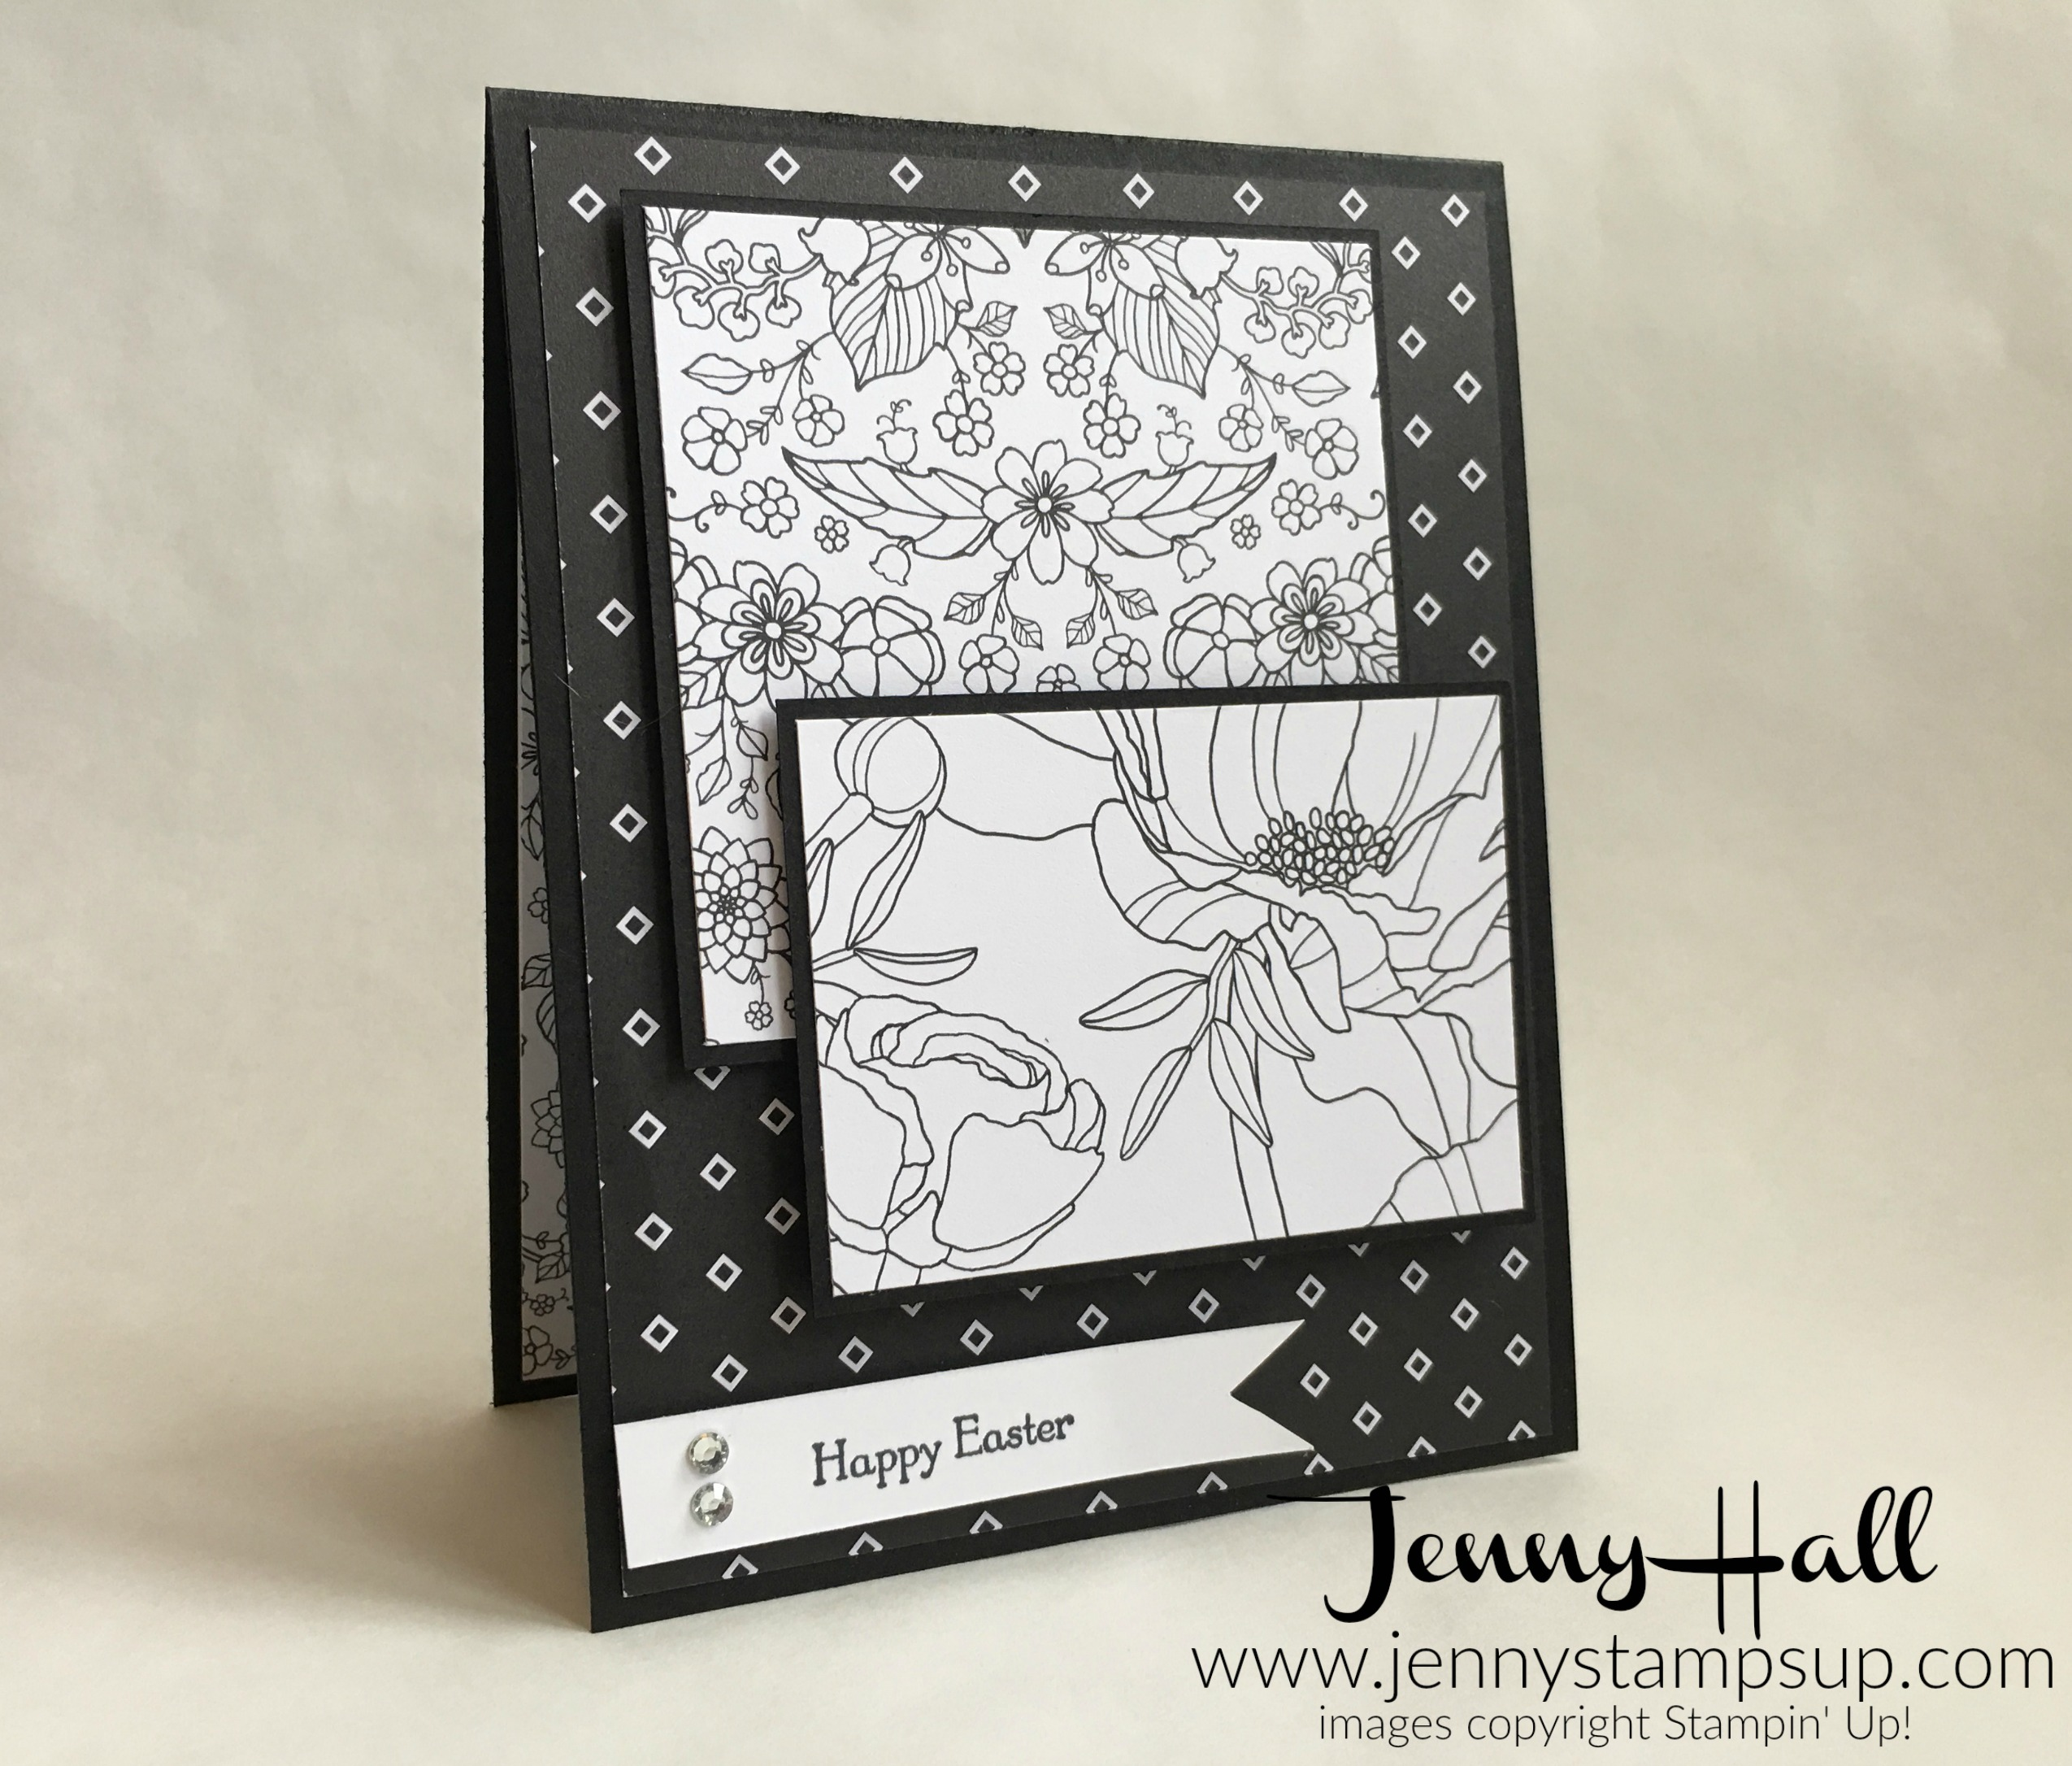 Black and White simple Easter card by Jenny Hall at www.jennystampsup.com